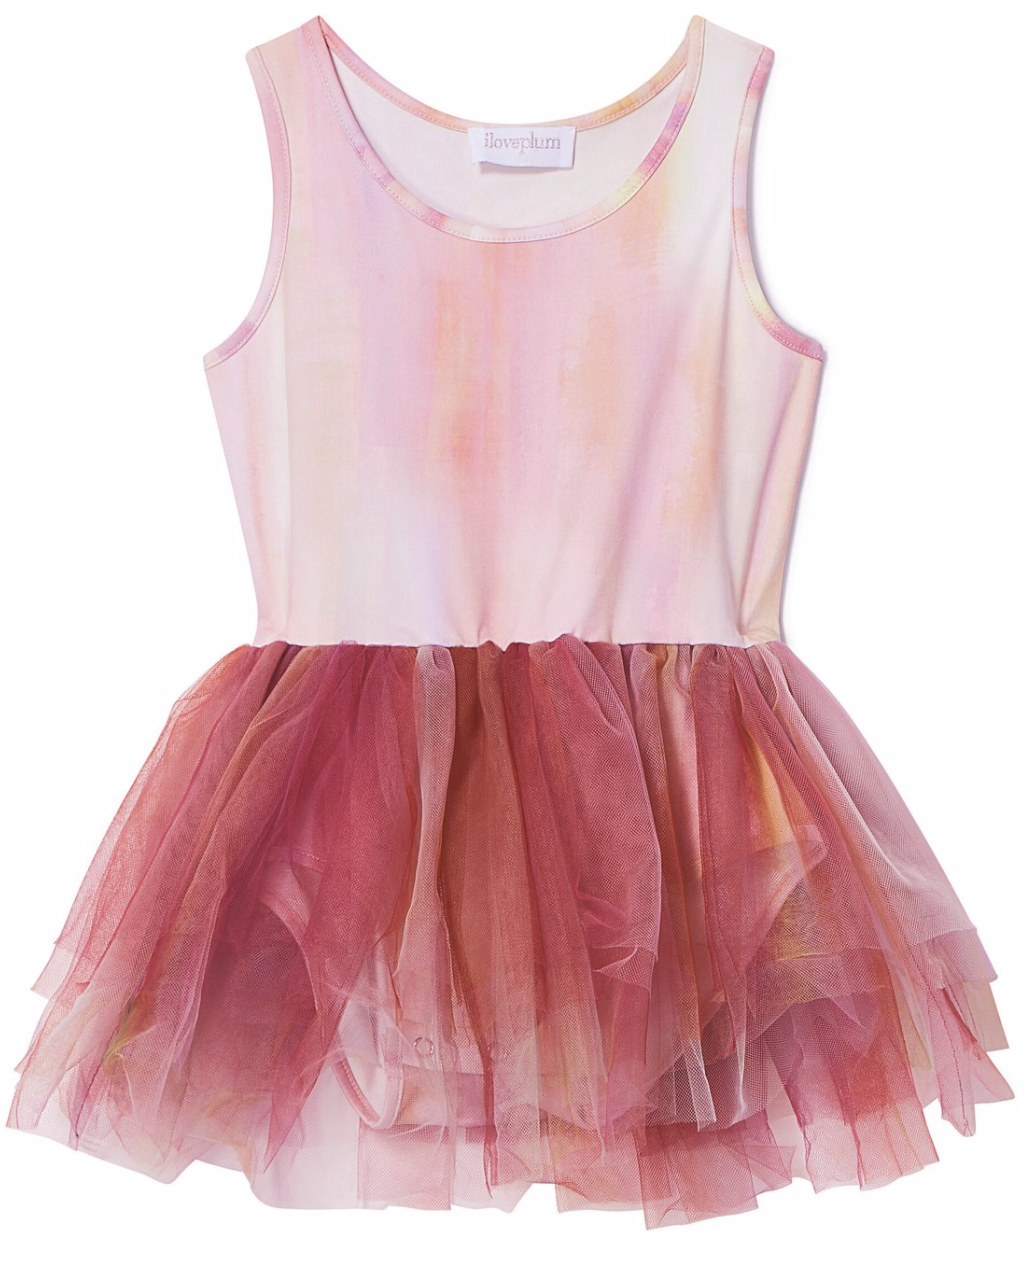 PLUM B.A.E. Watercolor Tutu Dress